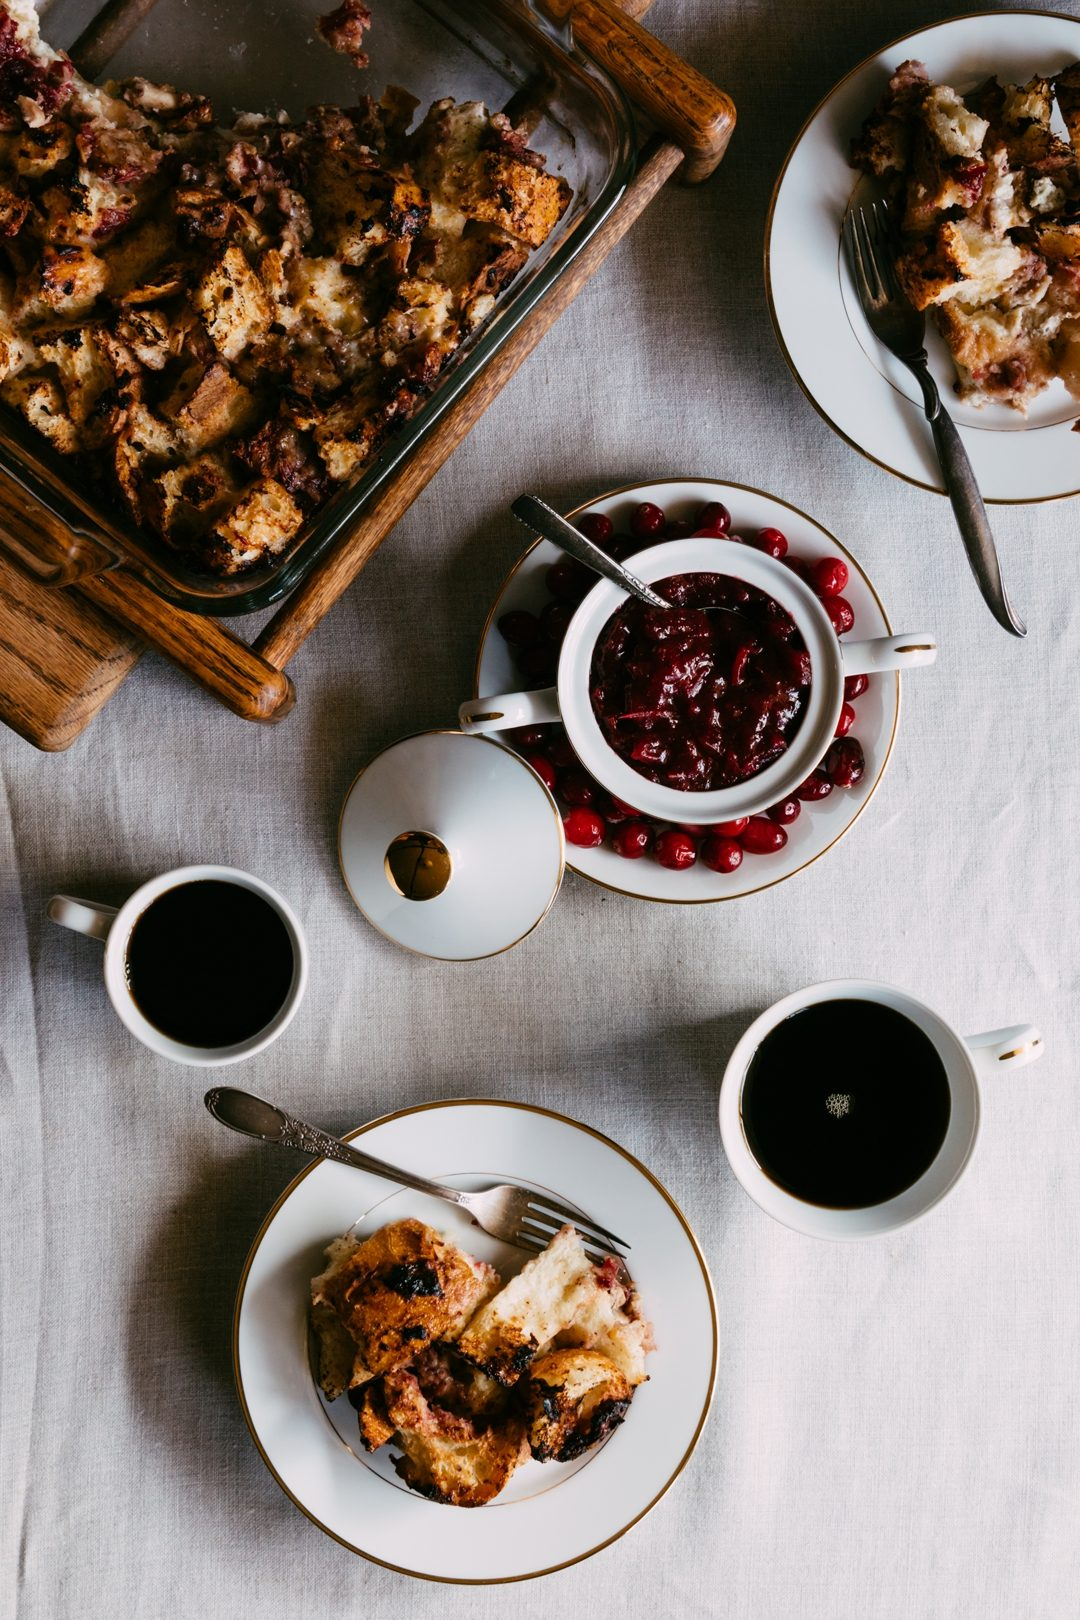 Savory French Toast Casserole with Thanksgiving Leftovers is a cross between French toast and stuffing and is a great way to use up any leftover turkey, cranberry sauce, and cheese from holiday platters. #Thanksgiving #Christmas #holidays #frenchtoast #turkey #cranberrysauce | www.megiswell.com